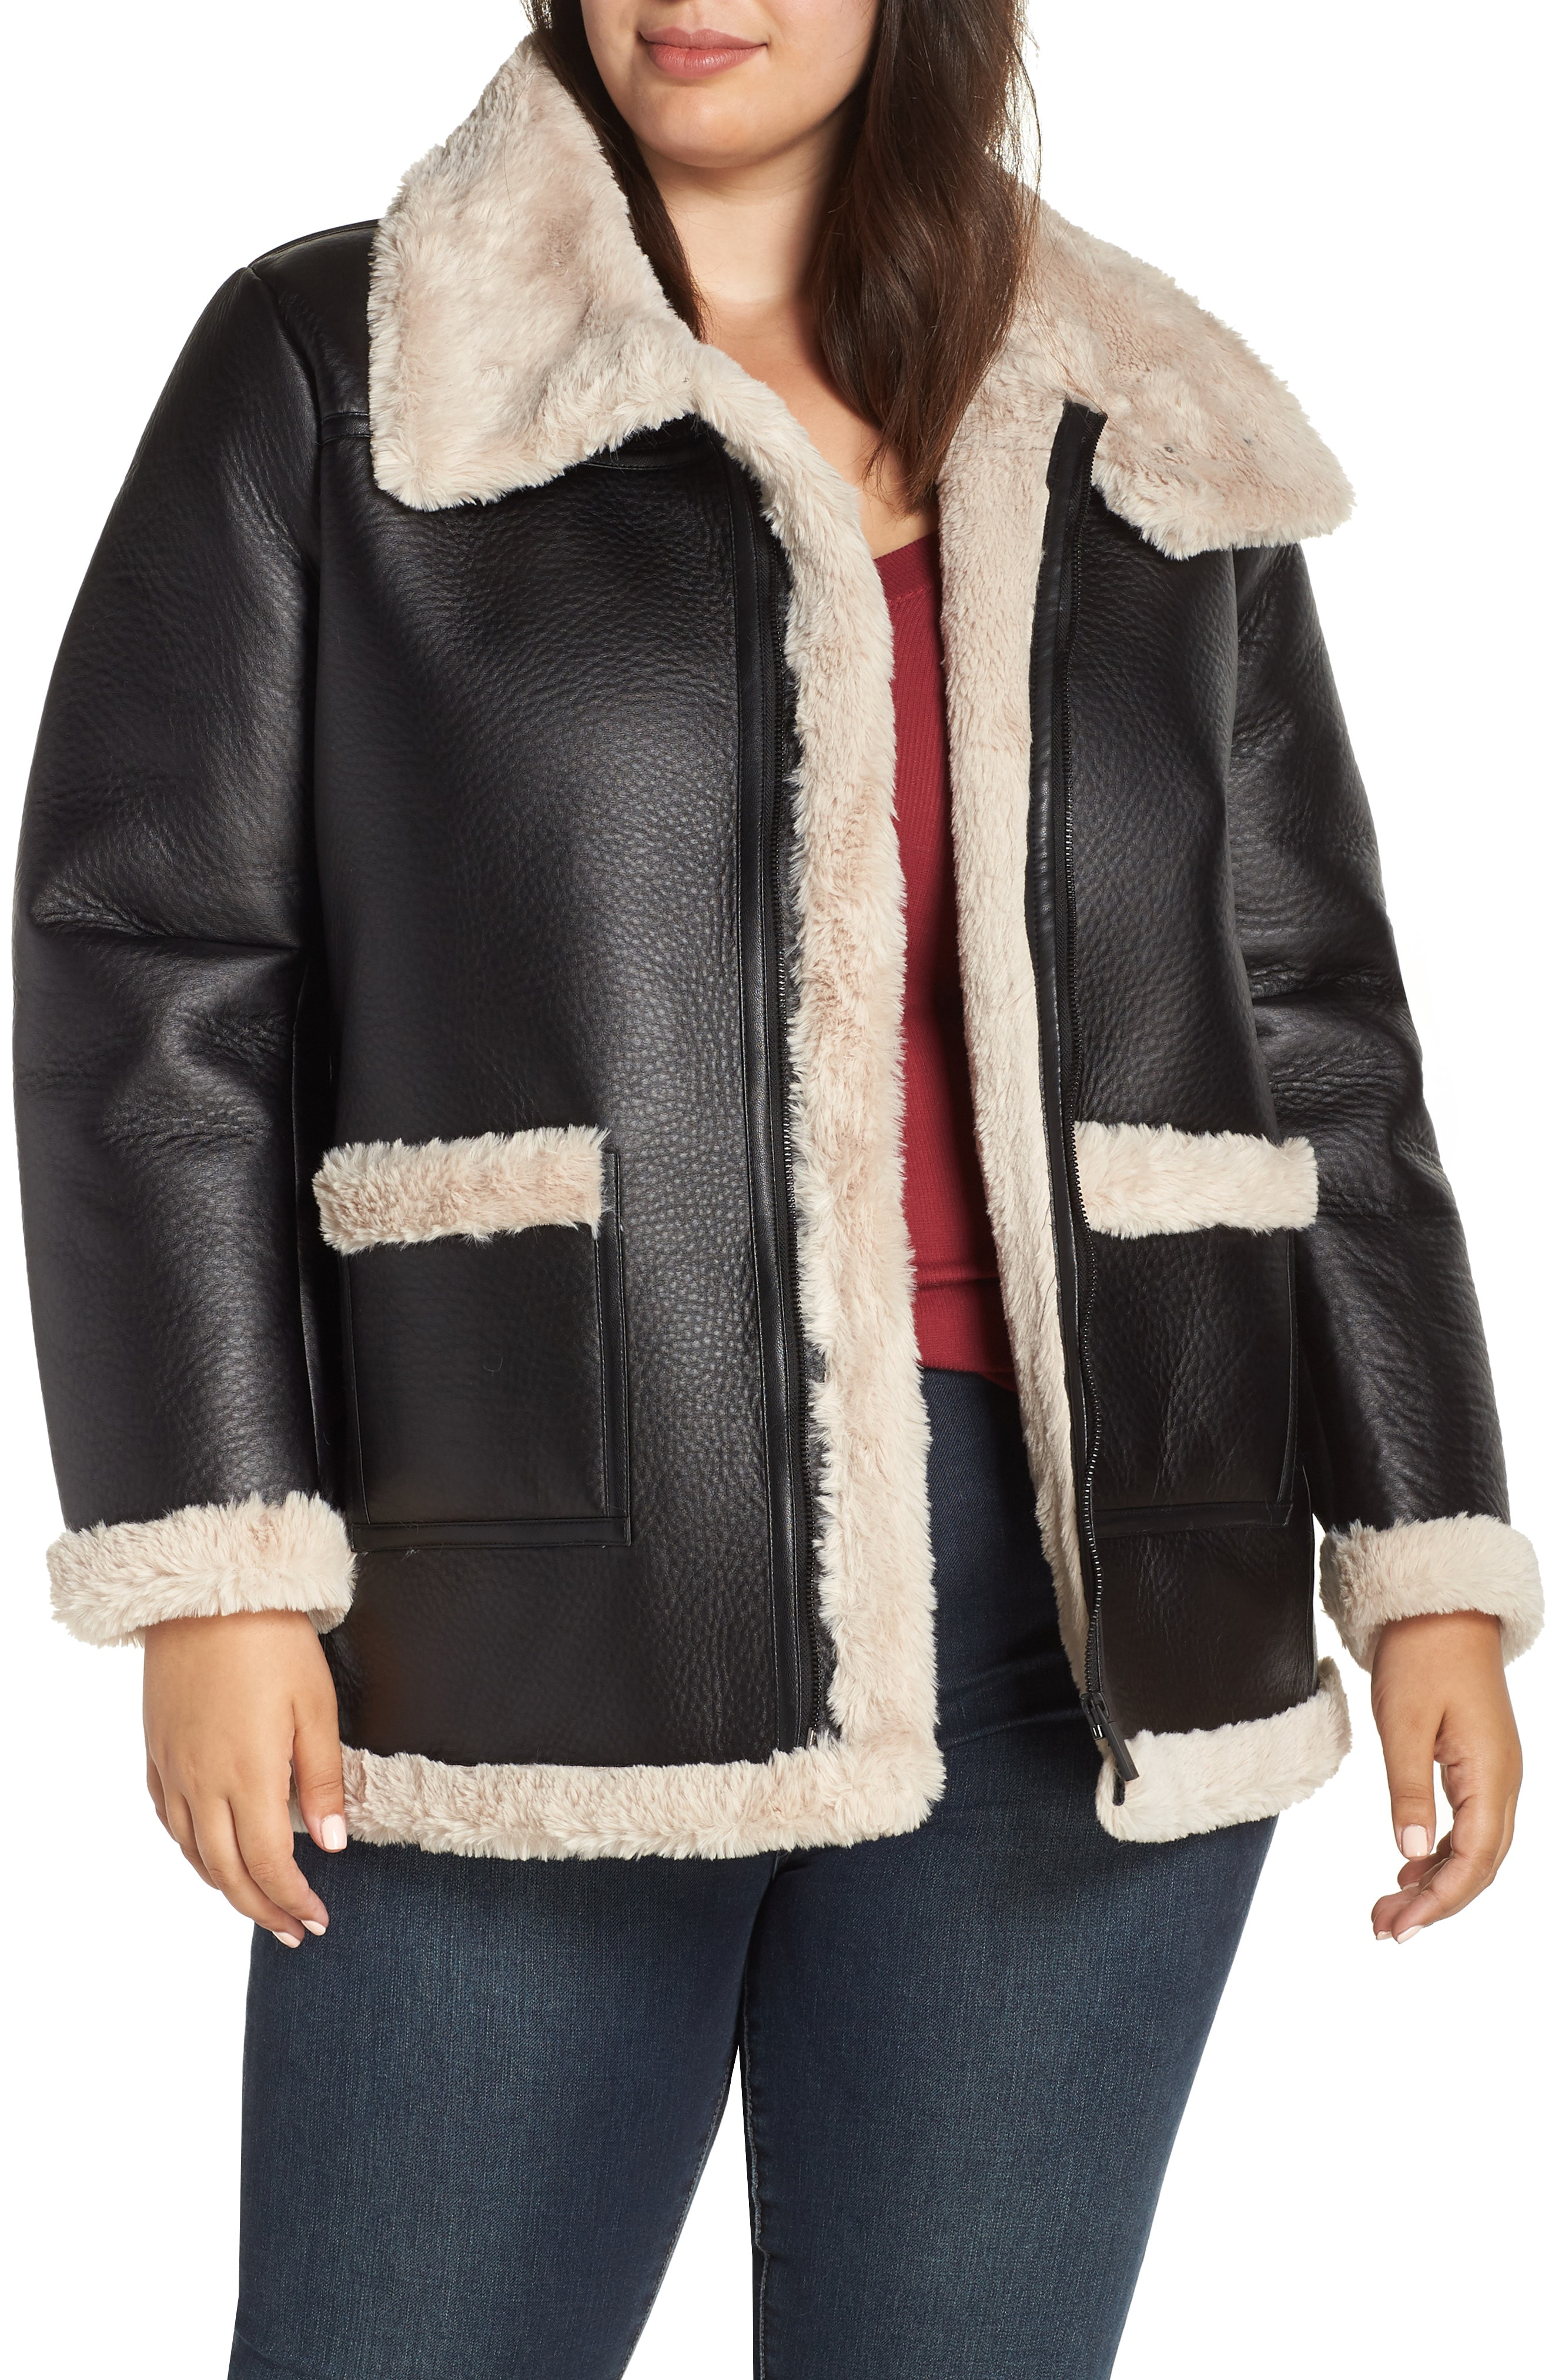 Vince Camuto Faux Shearling Jacket (Plus Size)